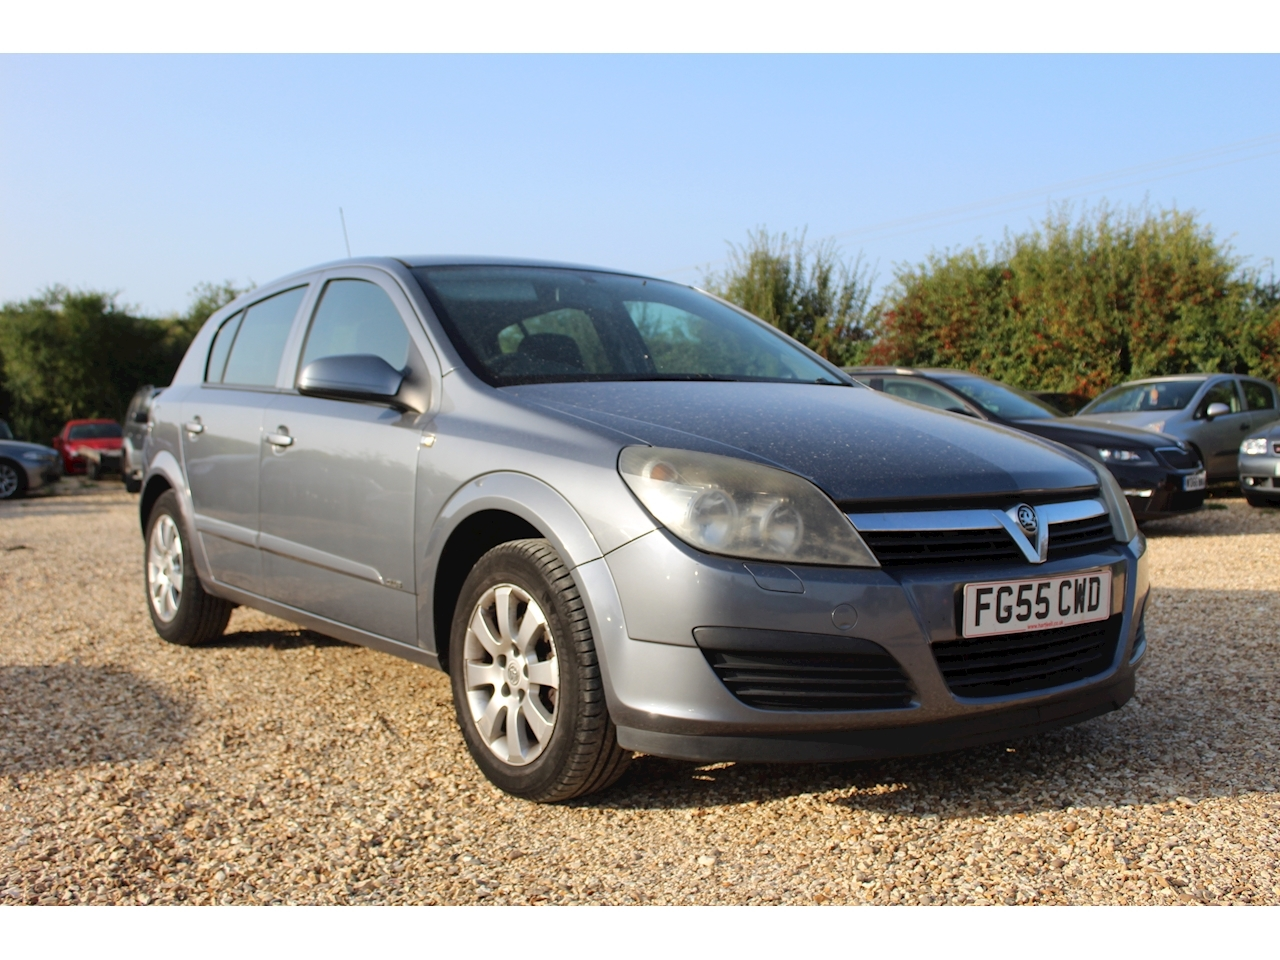 Vauxhall Astra Club Hatchback 1.8 Automatic Petrol